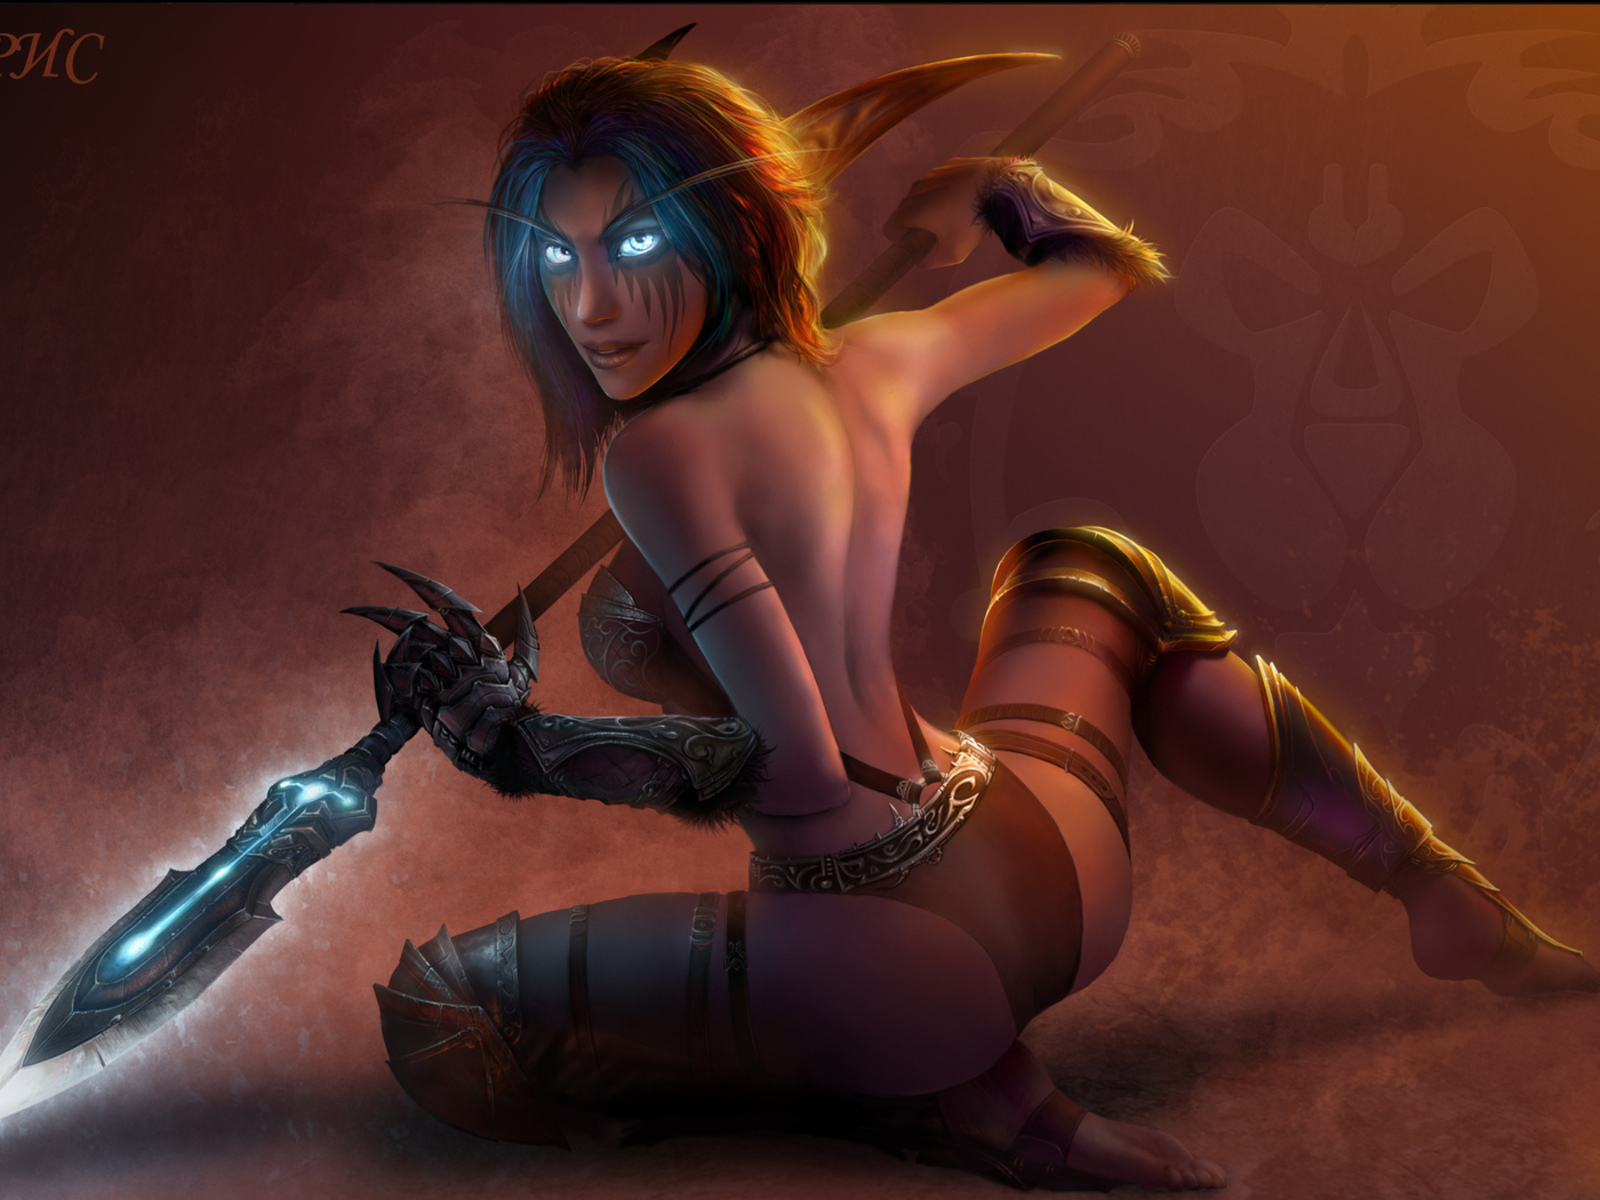 Night elves warcraft 3 porn exposed movies